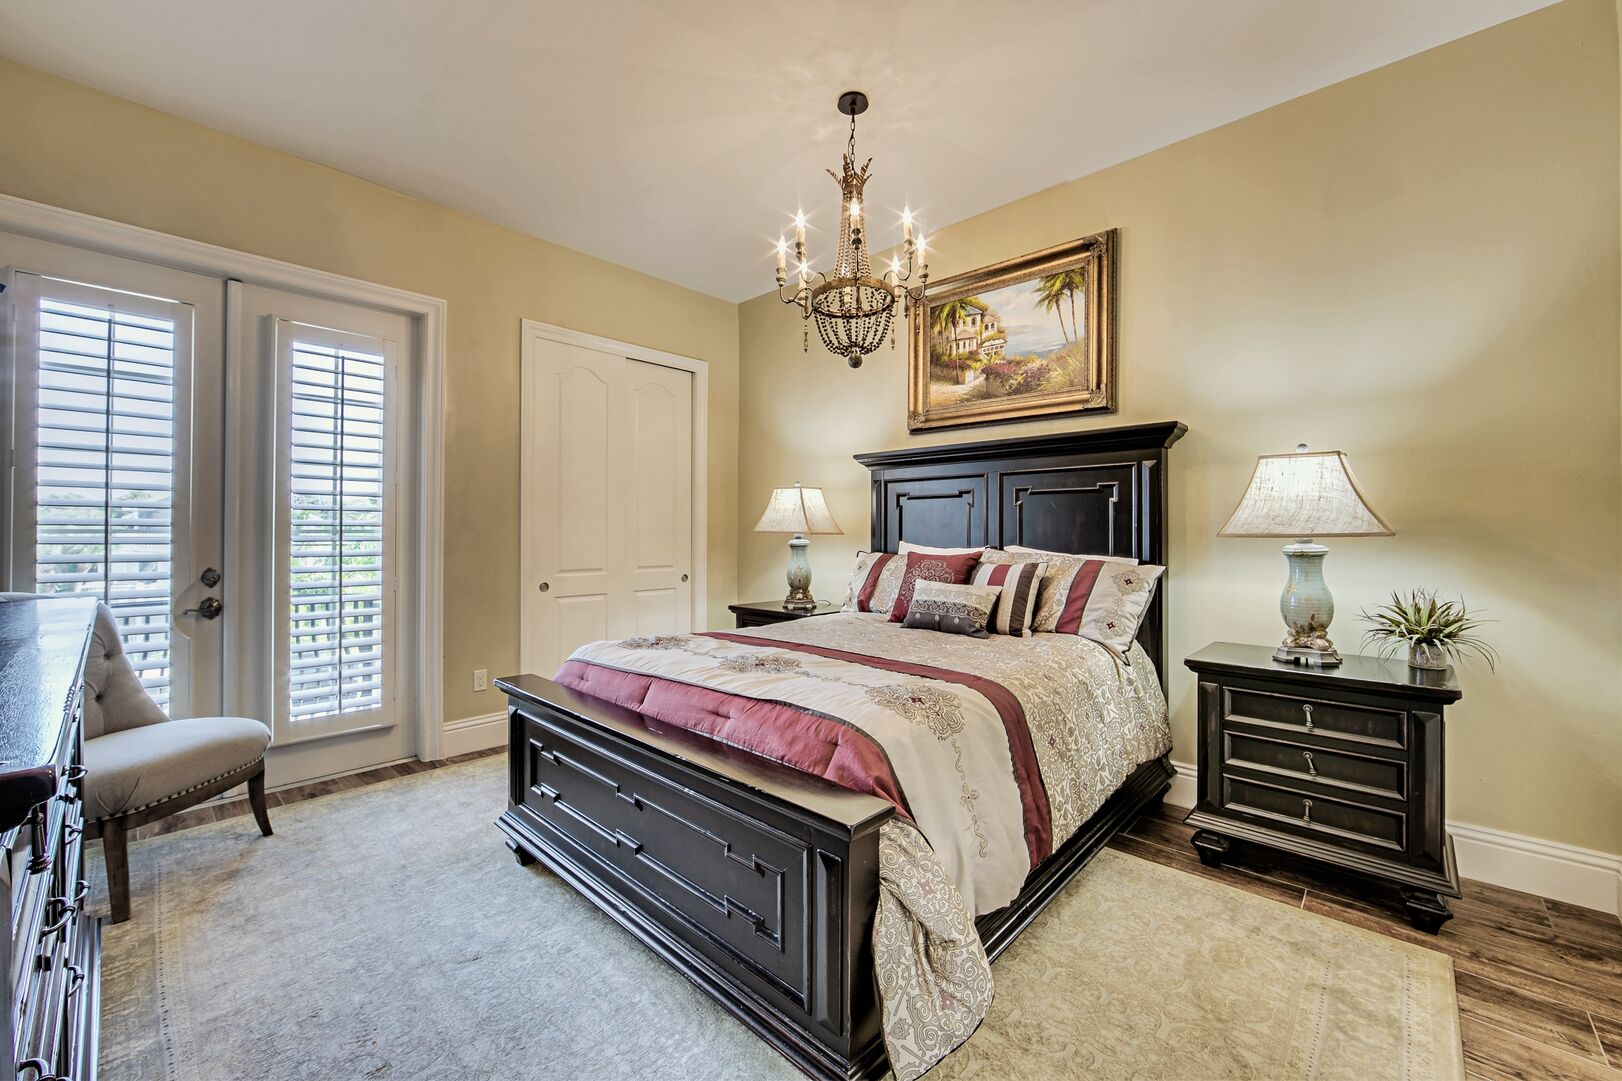 Large Bed, Dresser, Closet, Nightstands, and the Window Doors to the Balcony.